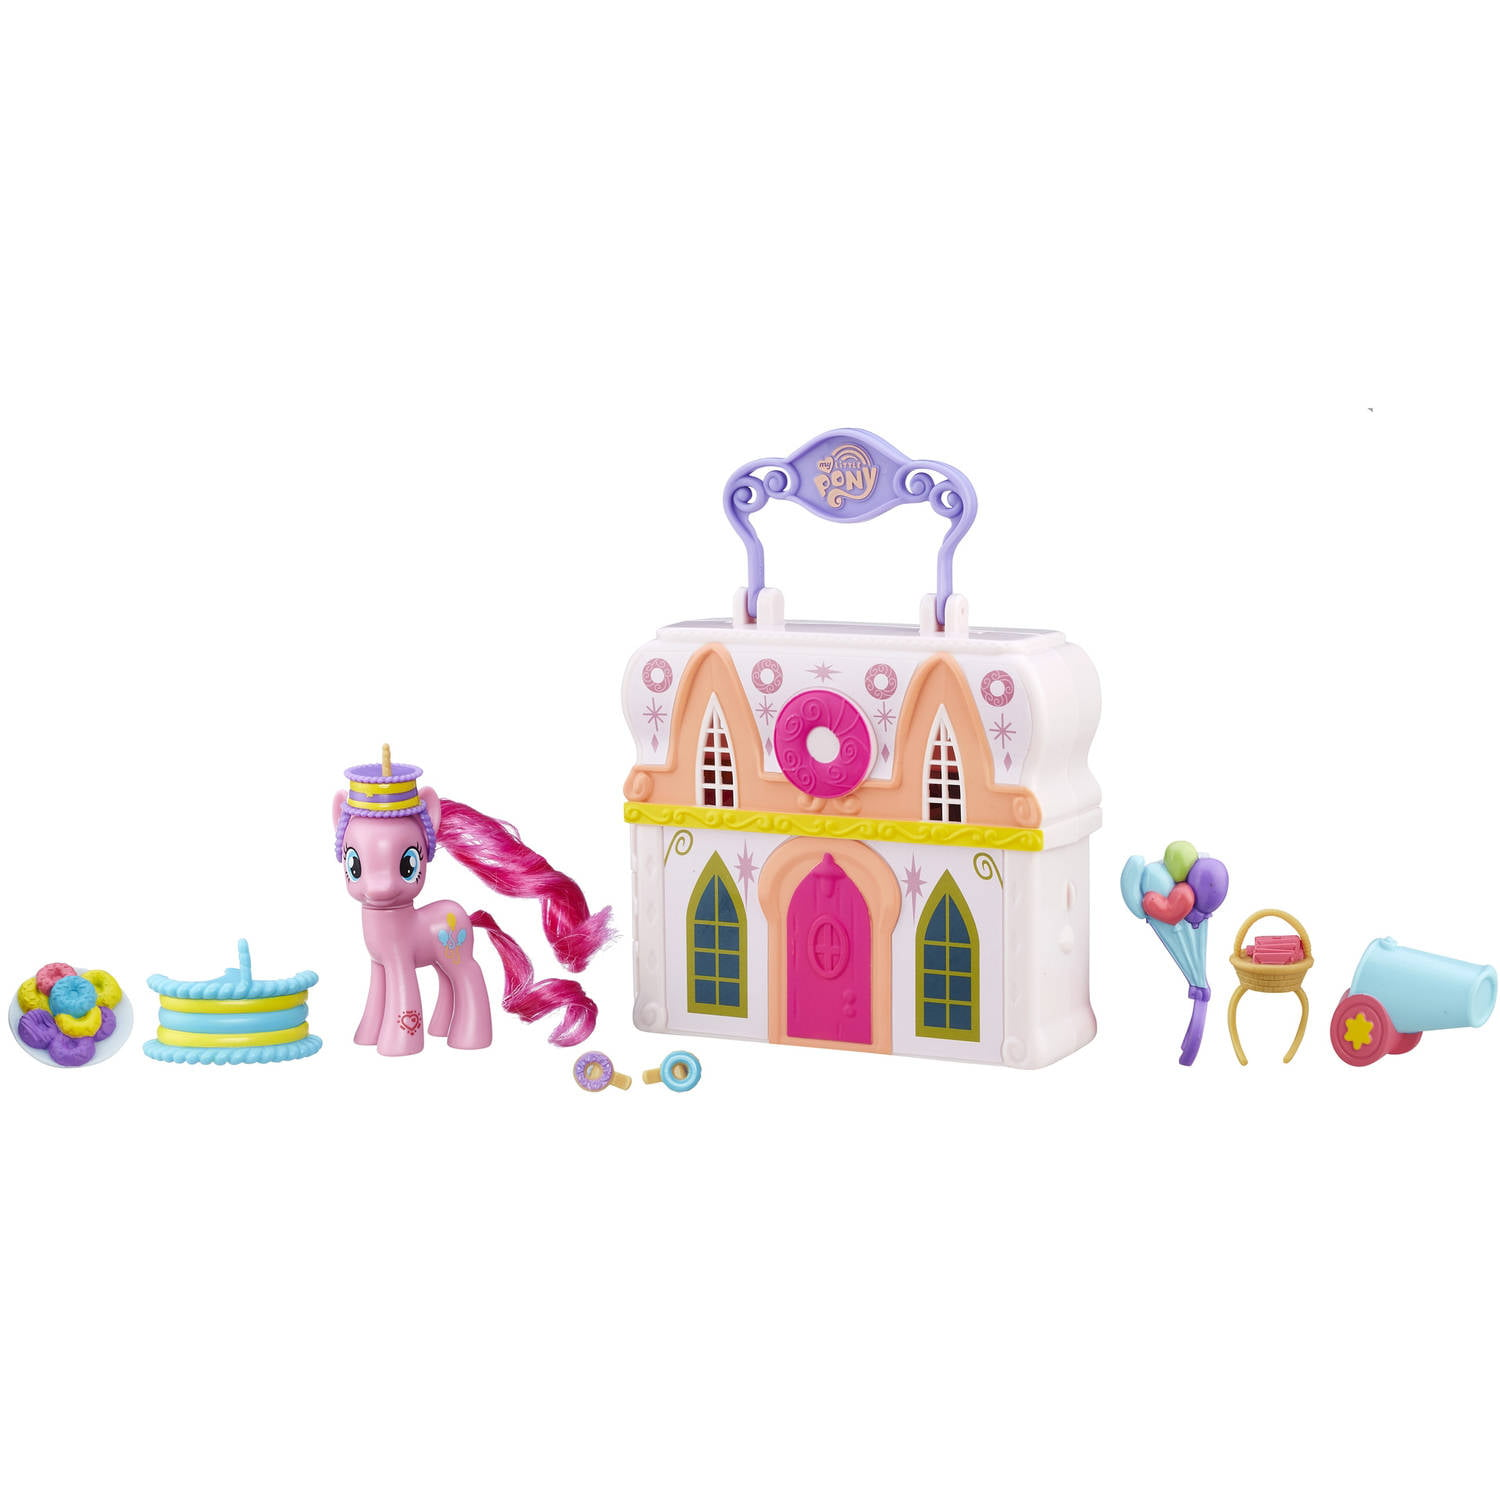 My Little Pony Friendship is Magic Pinkie Pie Donut Shop Playset by Hasbro